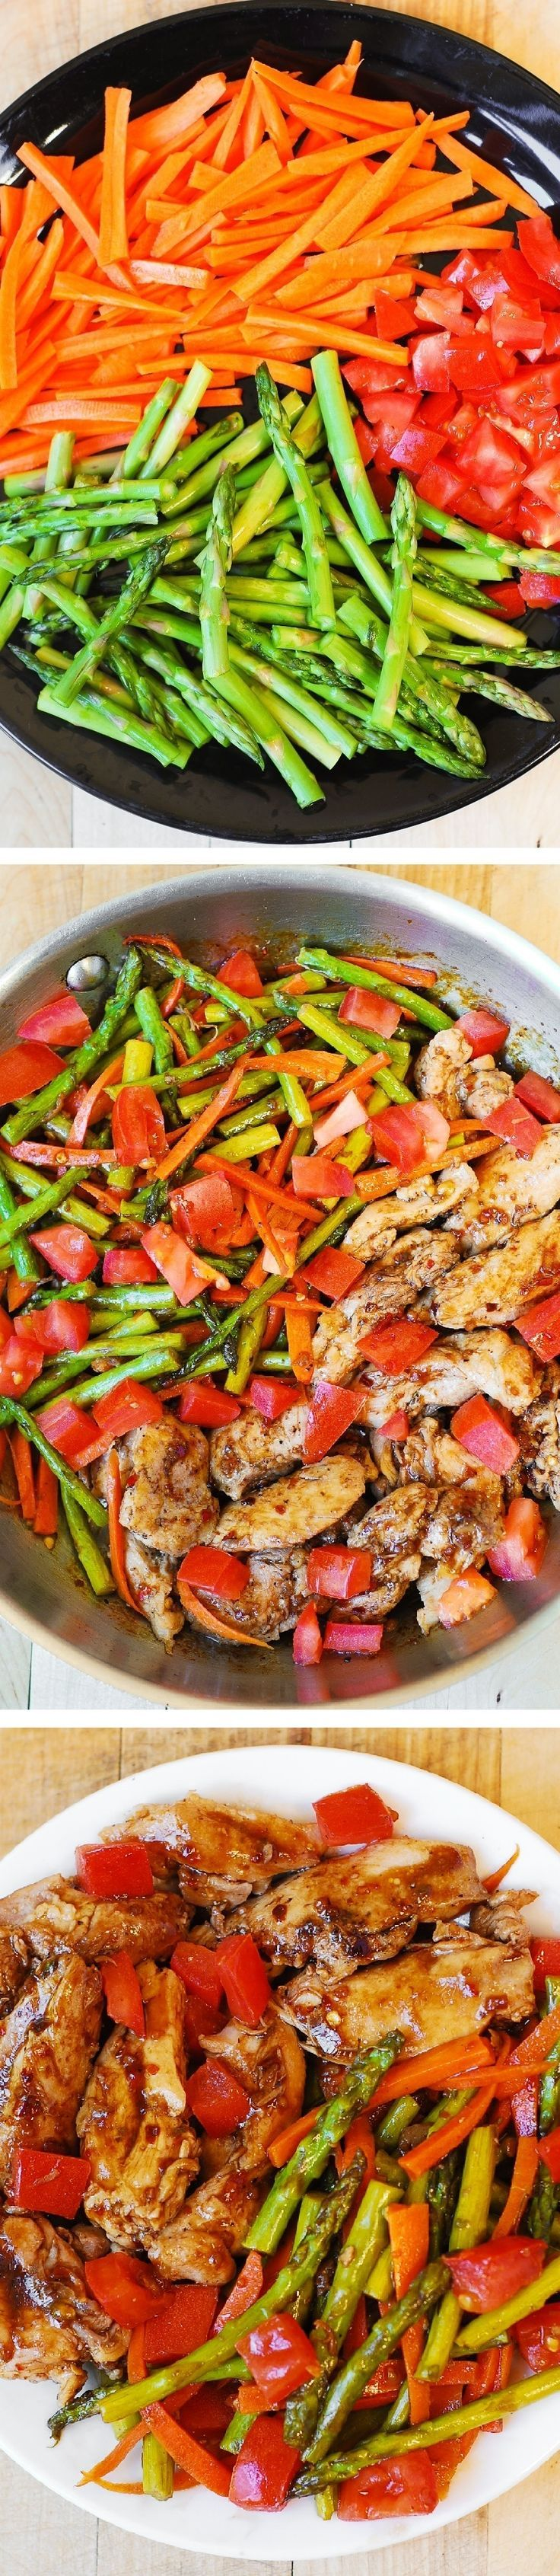 Balsamic Chicken with Asparagus and Tomatoes (healthy recipe) #BHG #sponsored